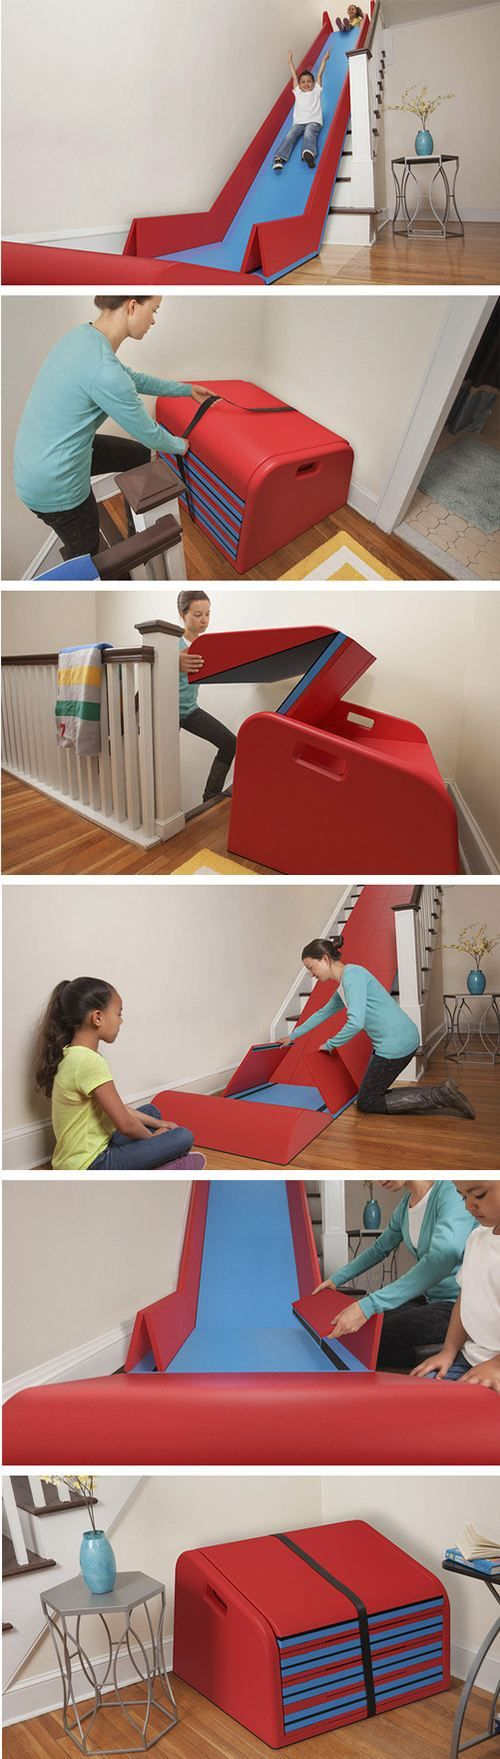 turn stairs into a slide